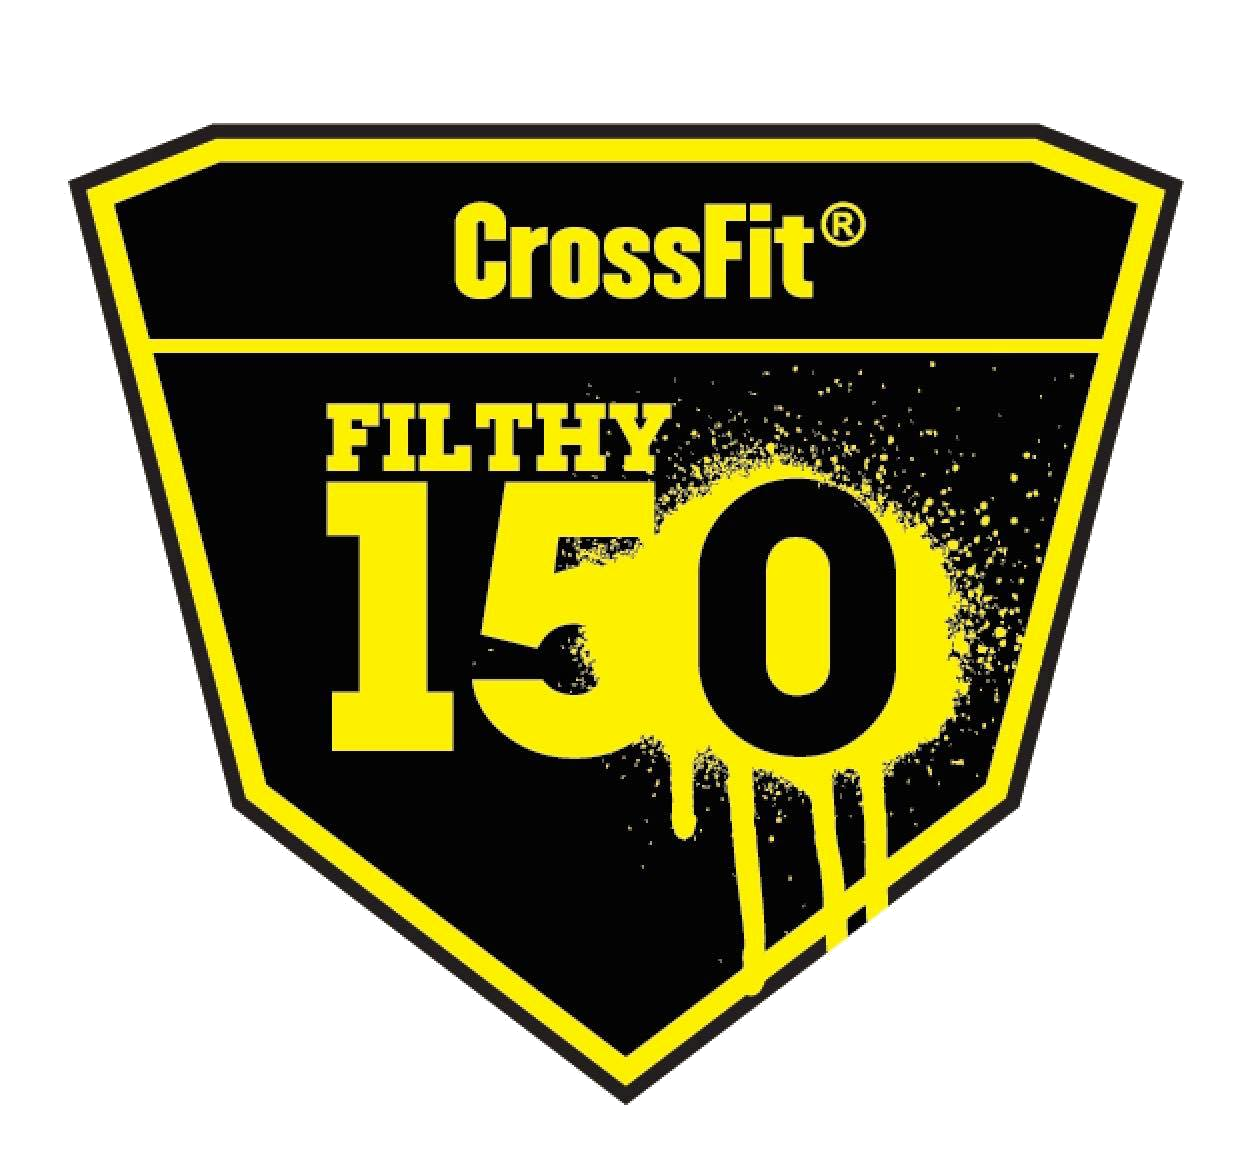 CrossFit® Filthy 150